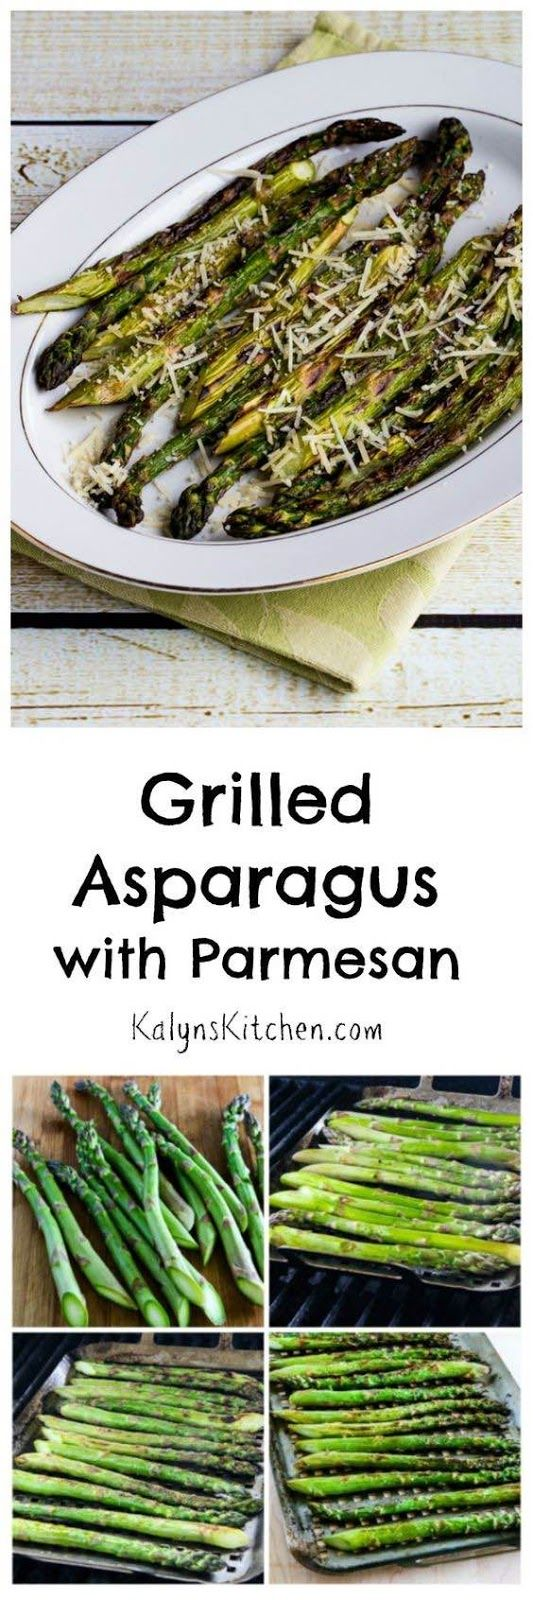 Grilled Asparagus with Parmesan is a perfect side dish for a spring or summer get-together, and I promise that asparagus fans will swoon over this dish! [from KalynsKitchen.com]